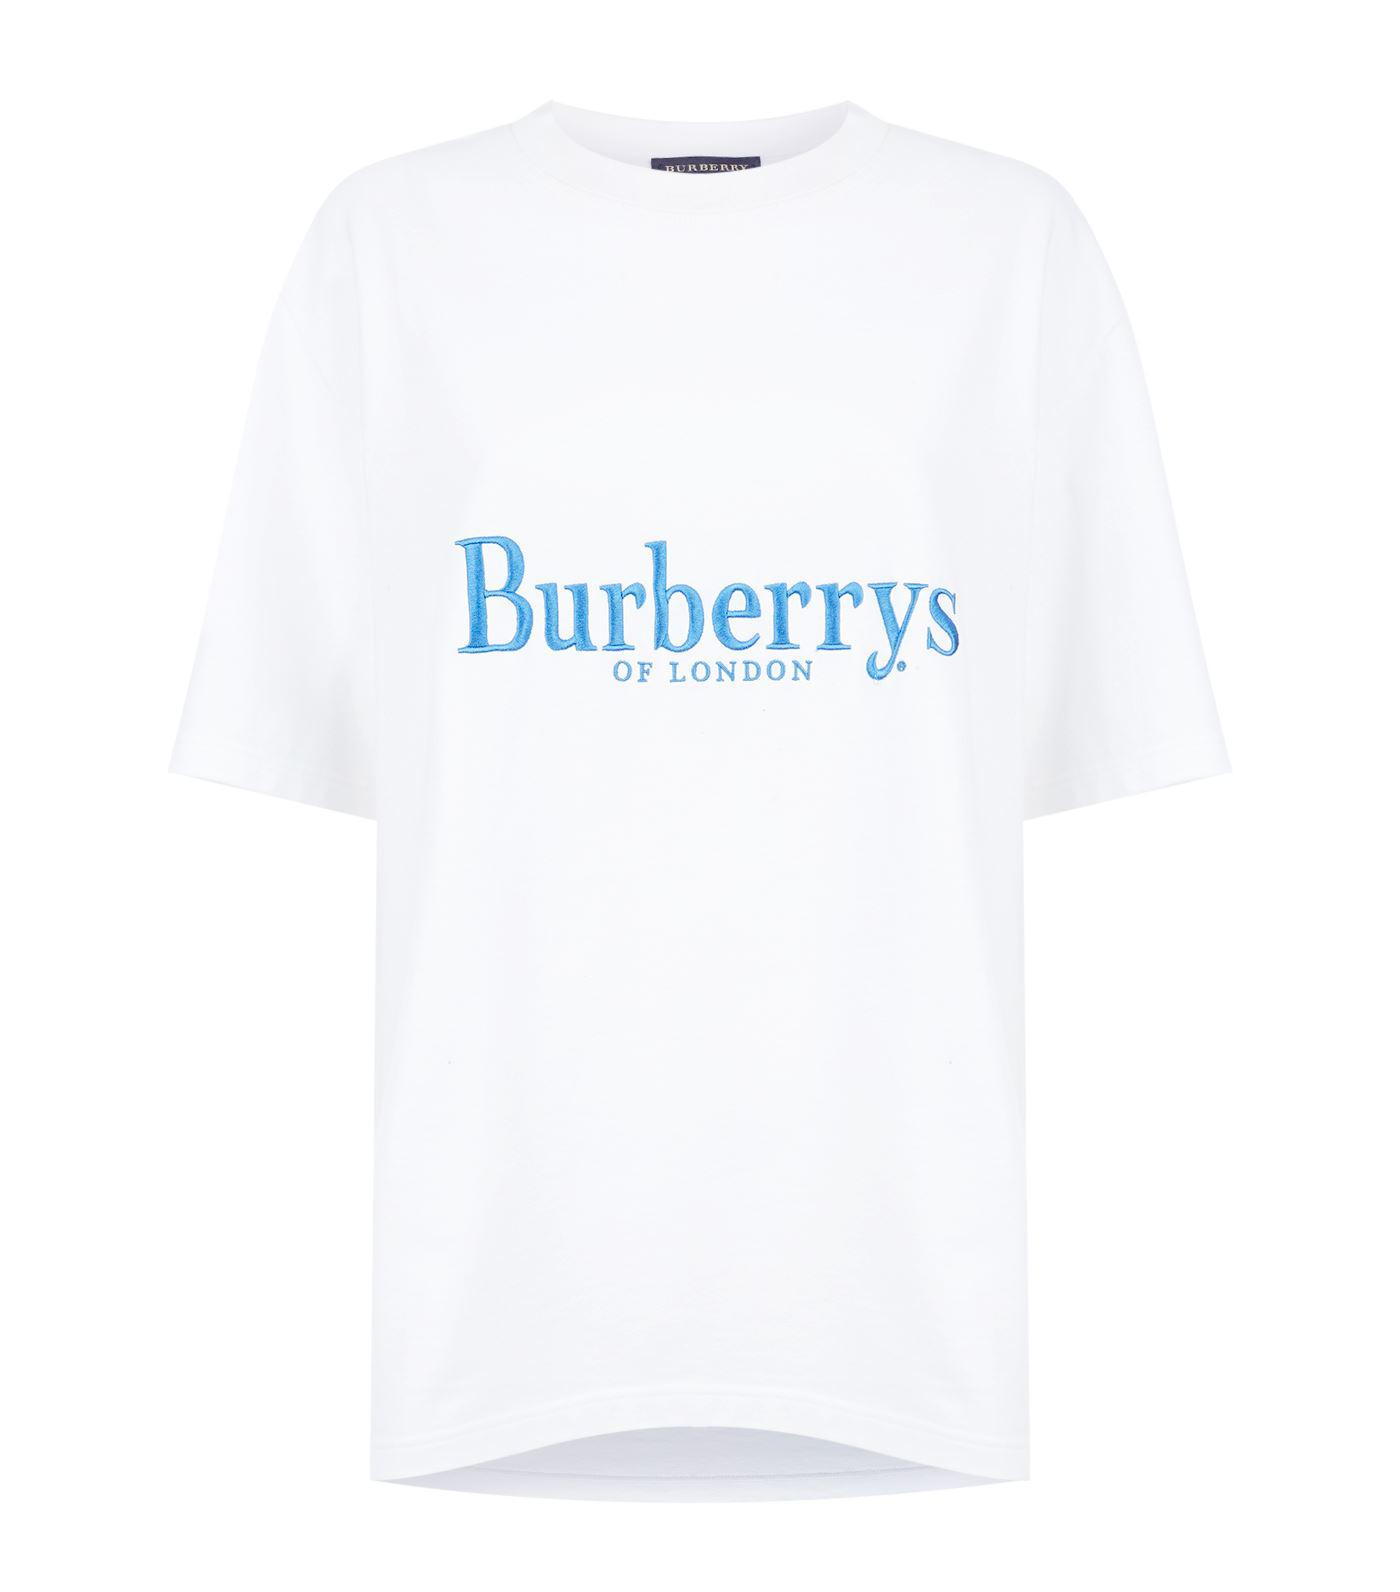 01dca45e466 Burberry Embroidered Vintage Logo T-shirt in White for Men - Lyst